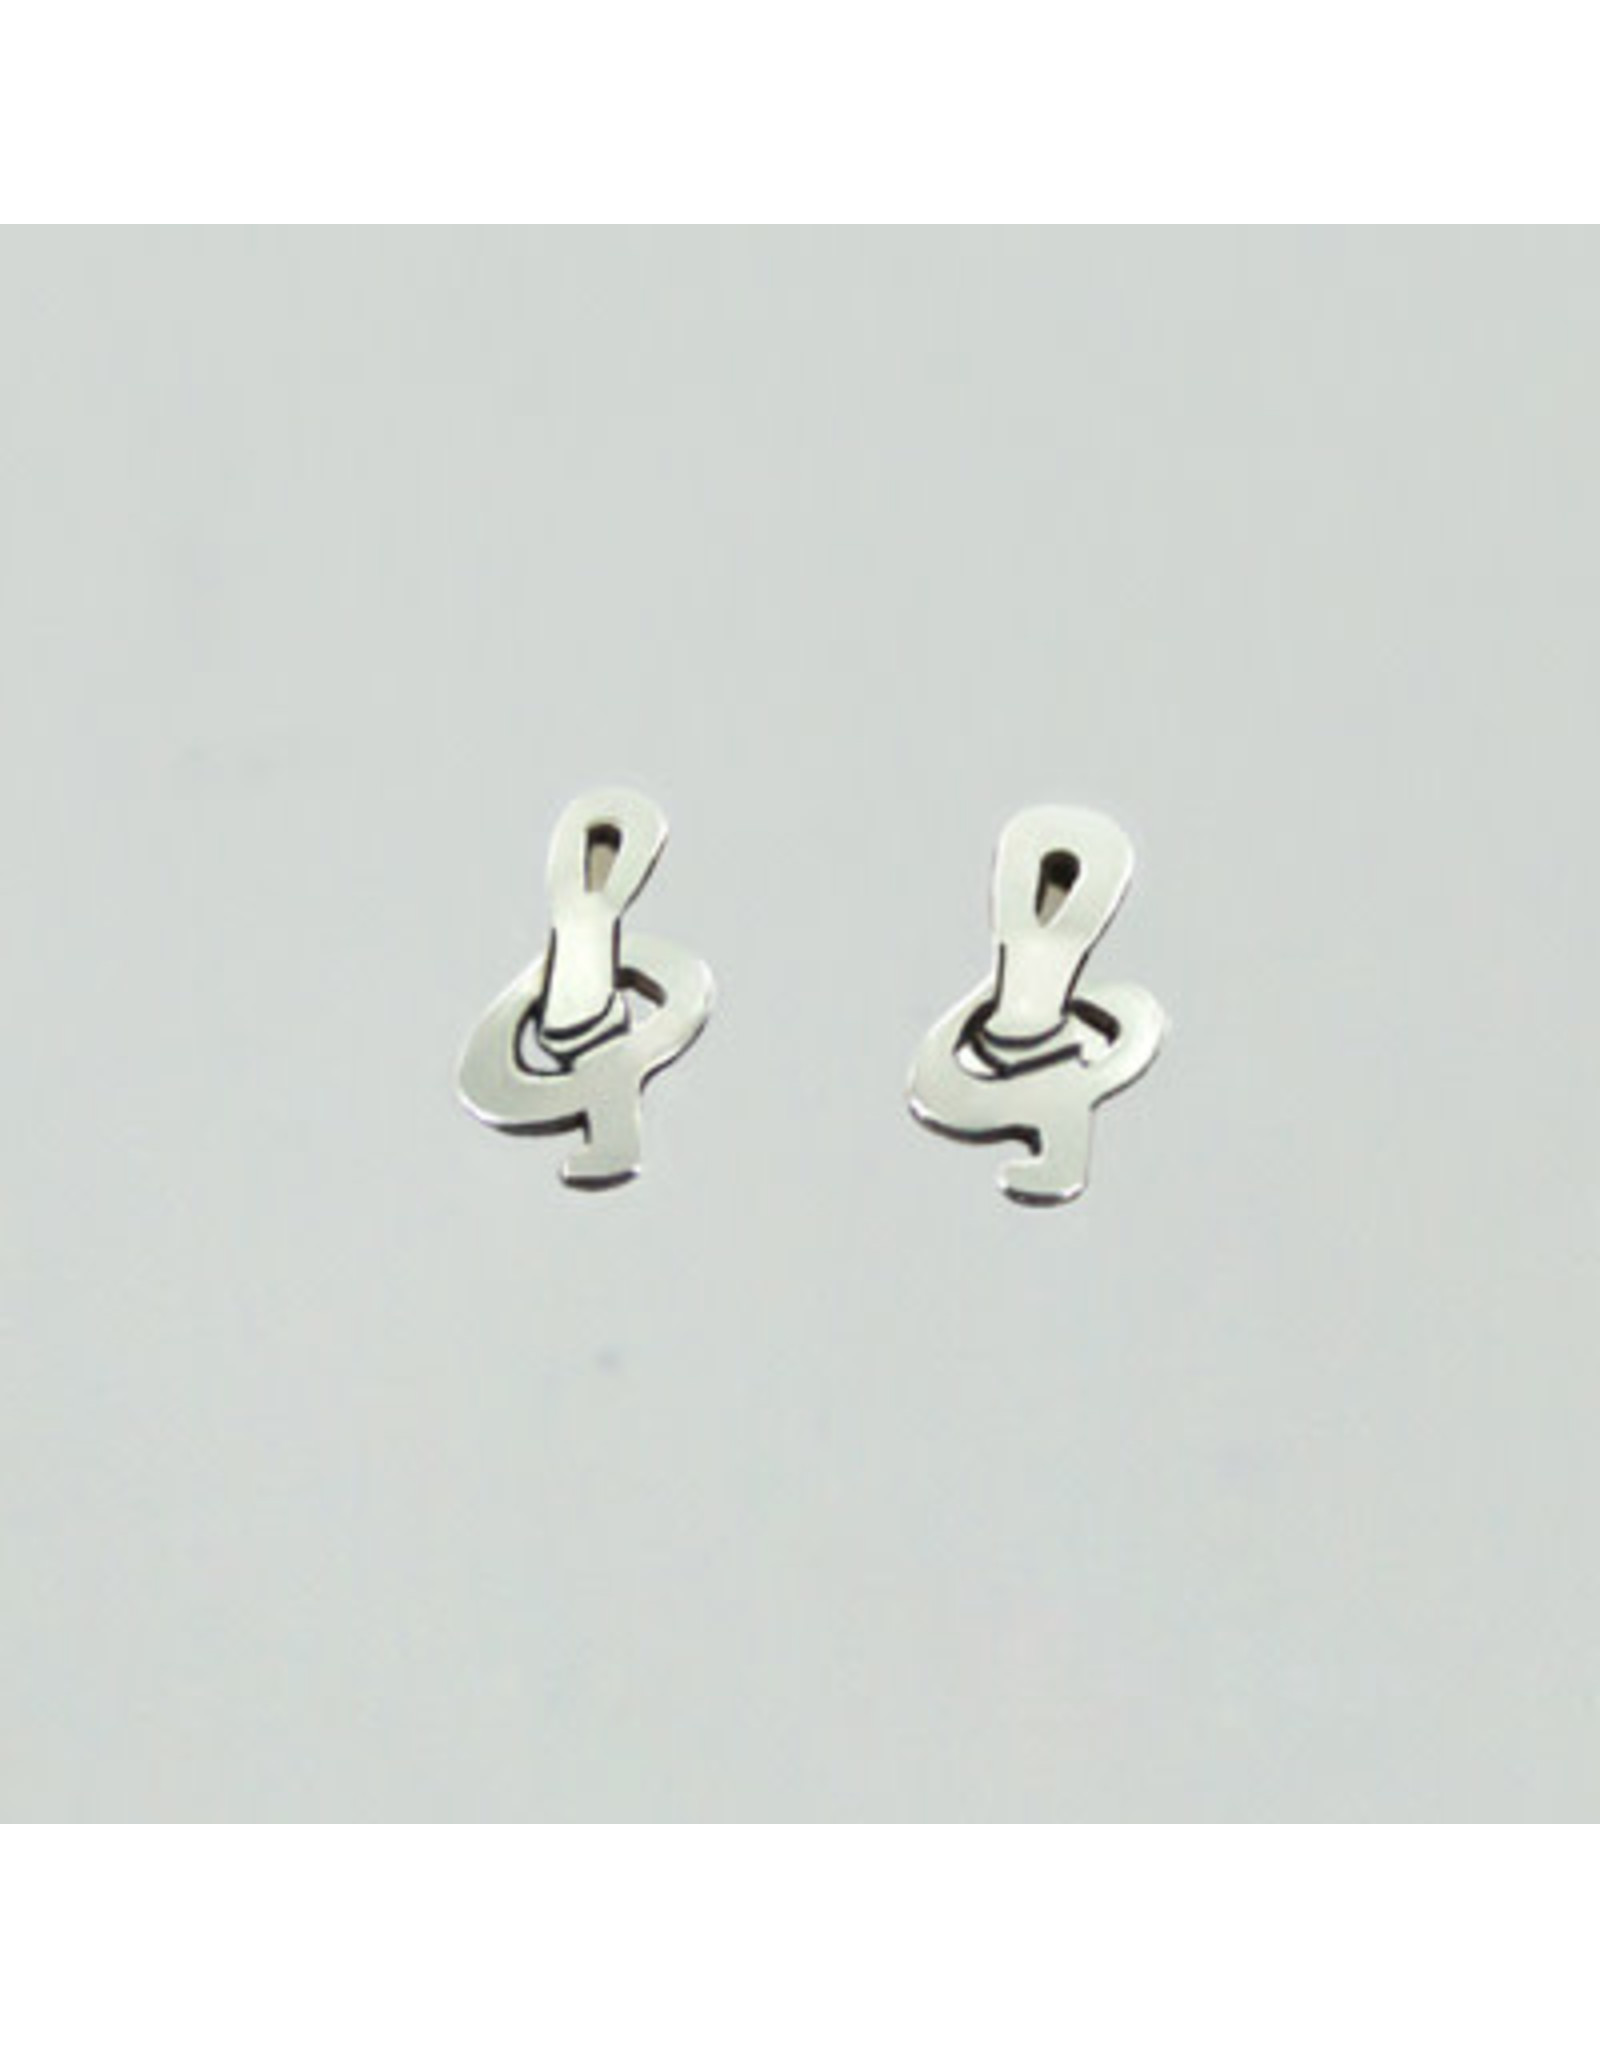 Treble Clef Post Earrings, Mexico